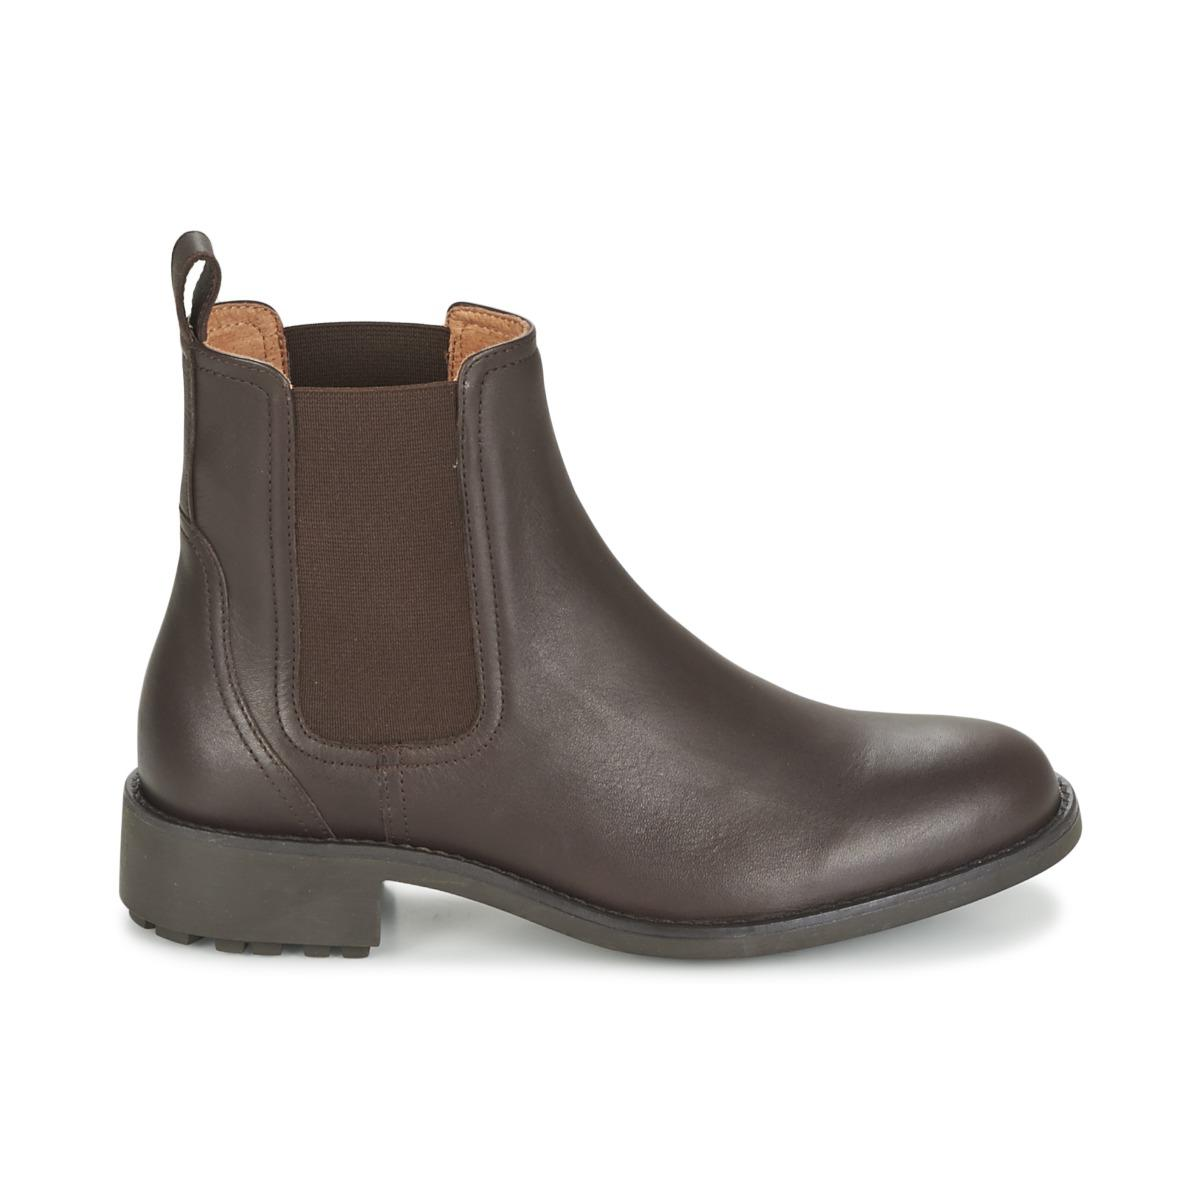 Aigle Leather Chante Chelsea Women's Low Ankle Boots In